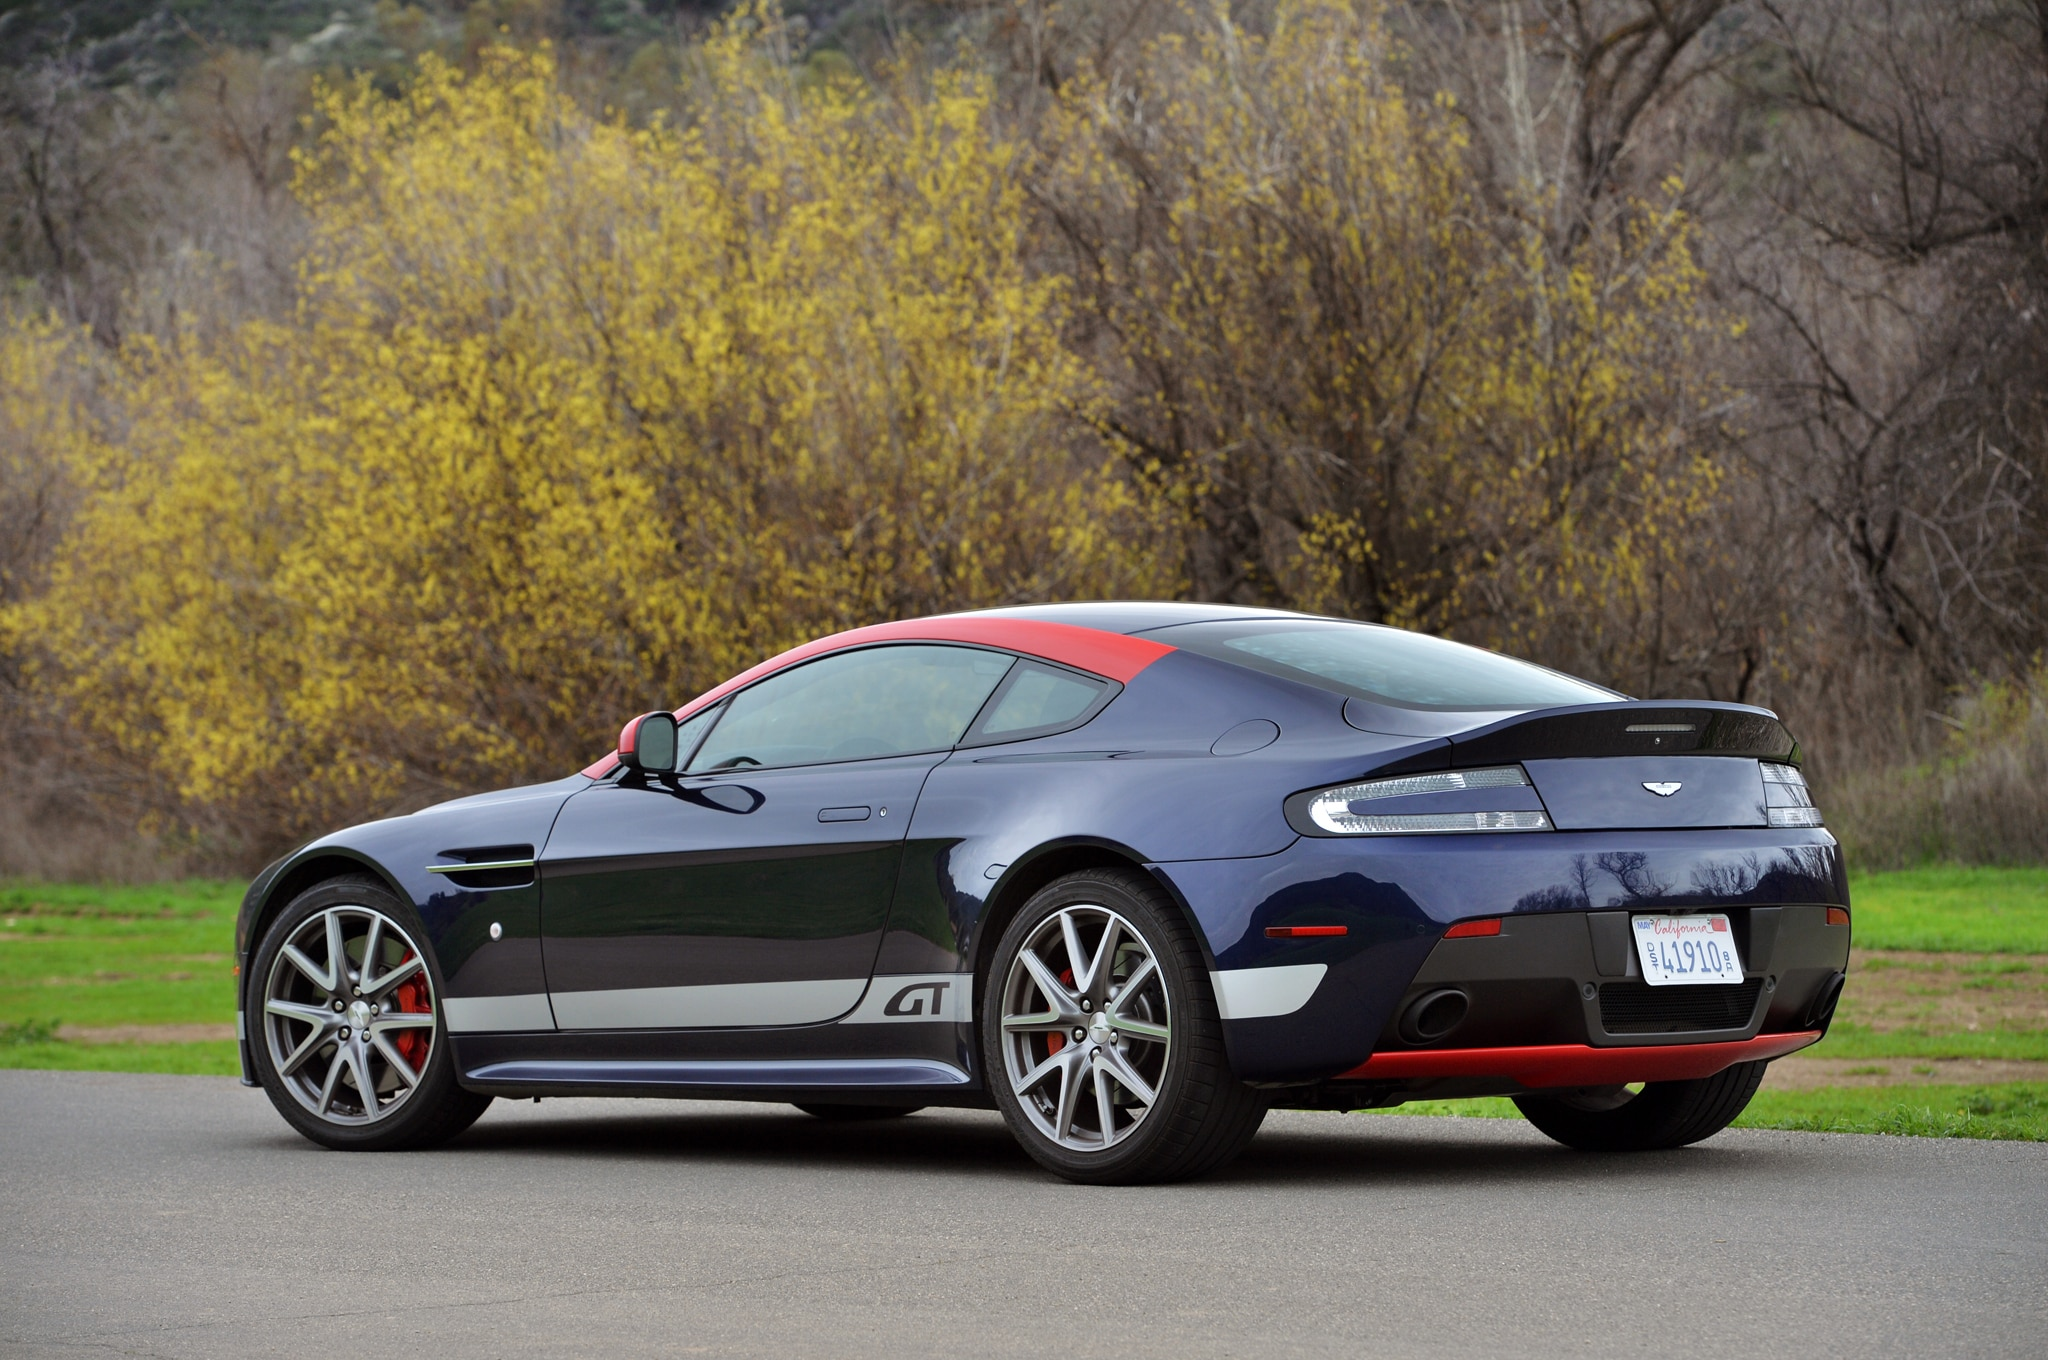 2015 aston martin v8 vantage gt review automobile magazine. Black Bedroom Furniture Sets. Home Design Ideas